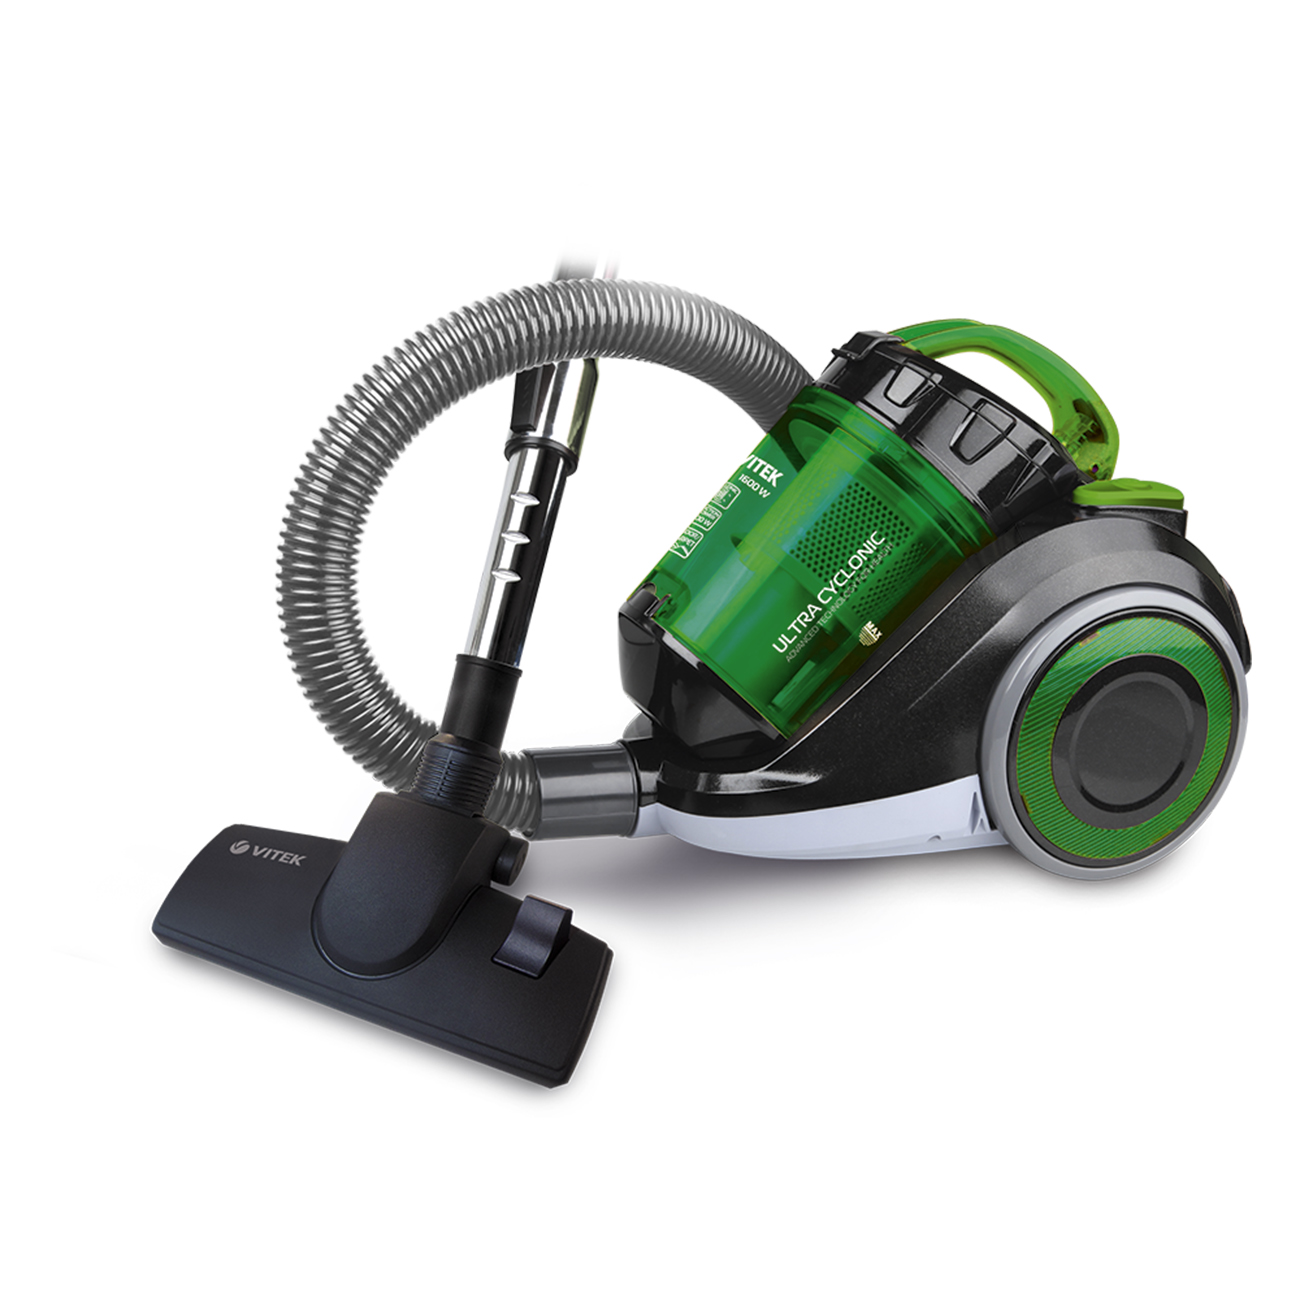 Electric vacuum cleaner Vitek VT-1815 G vitek vt 1815 g пылесос